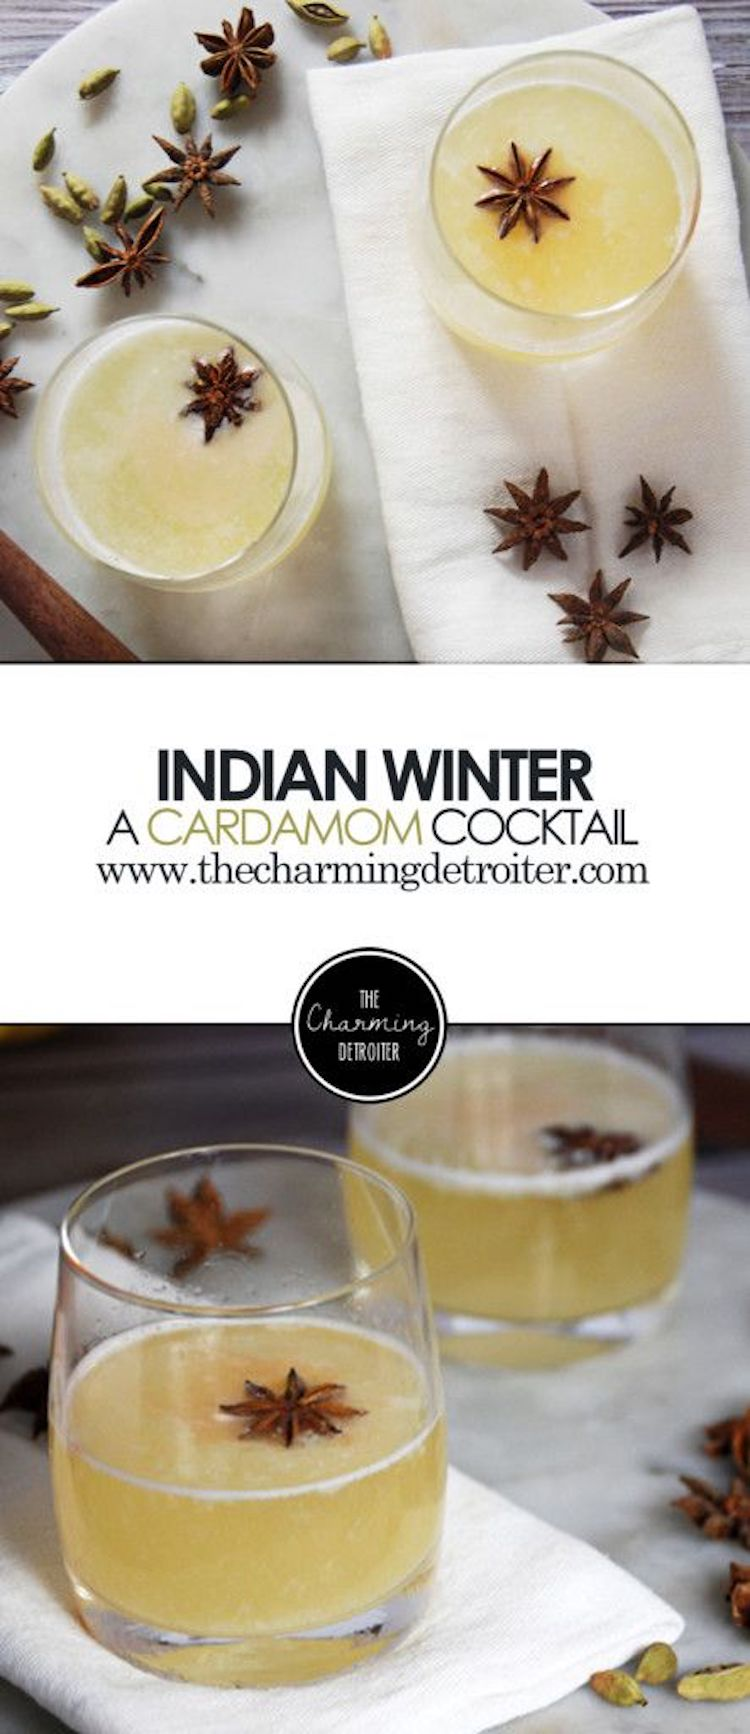 Indian Winter: A Cardamon Cocktail